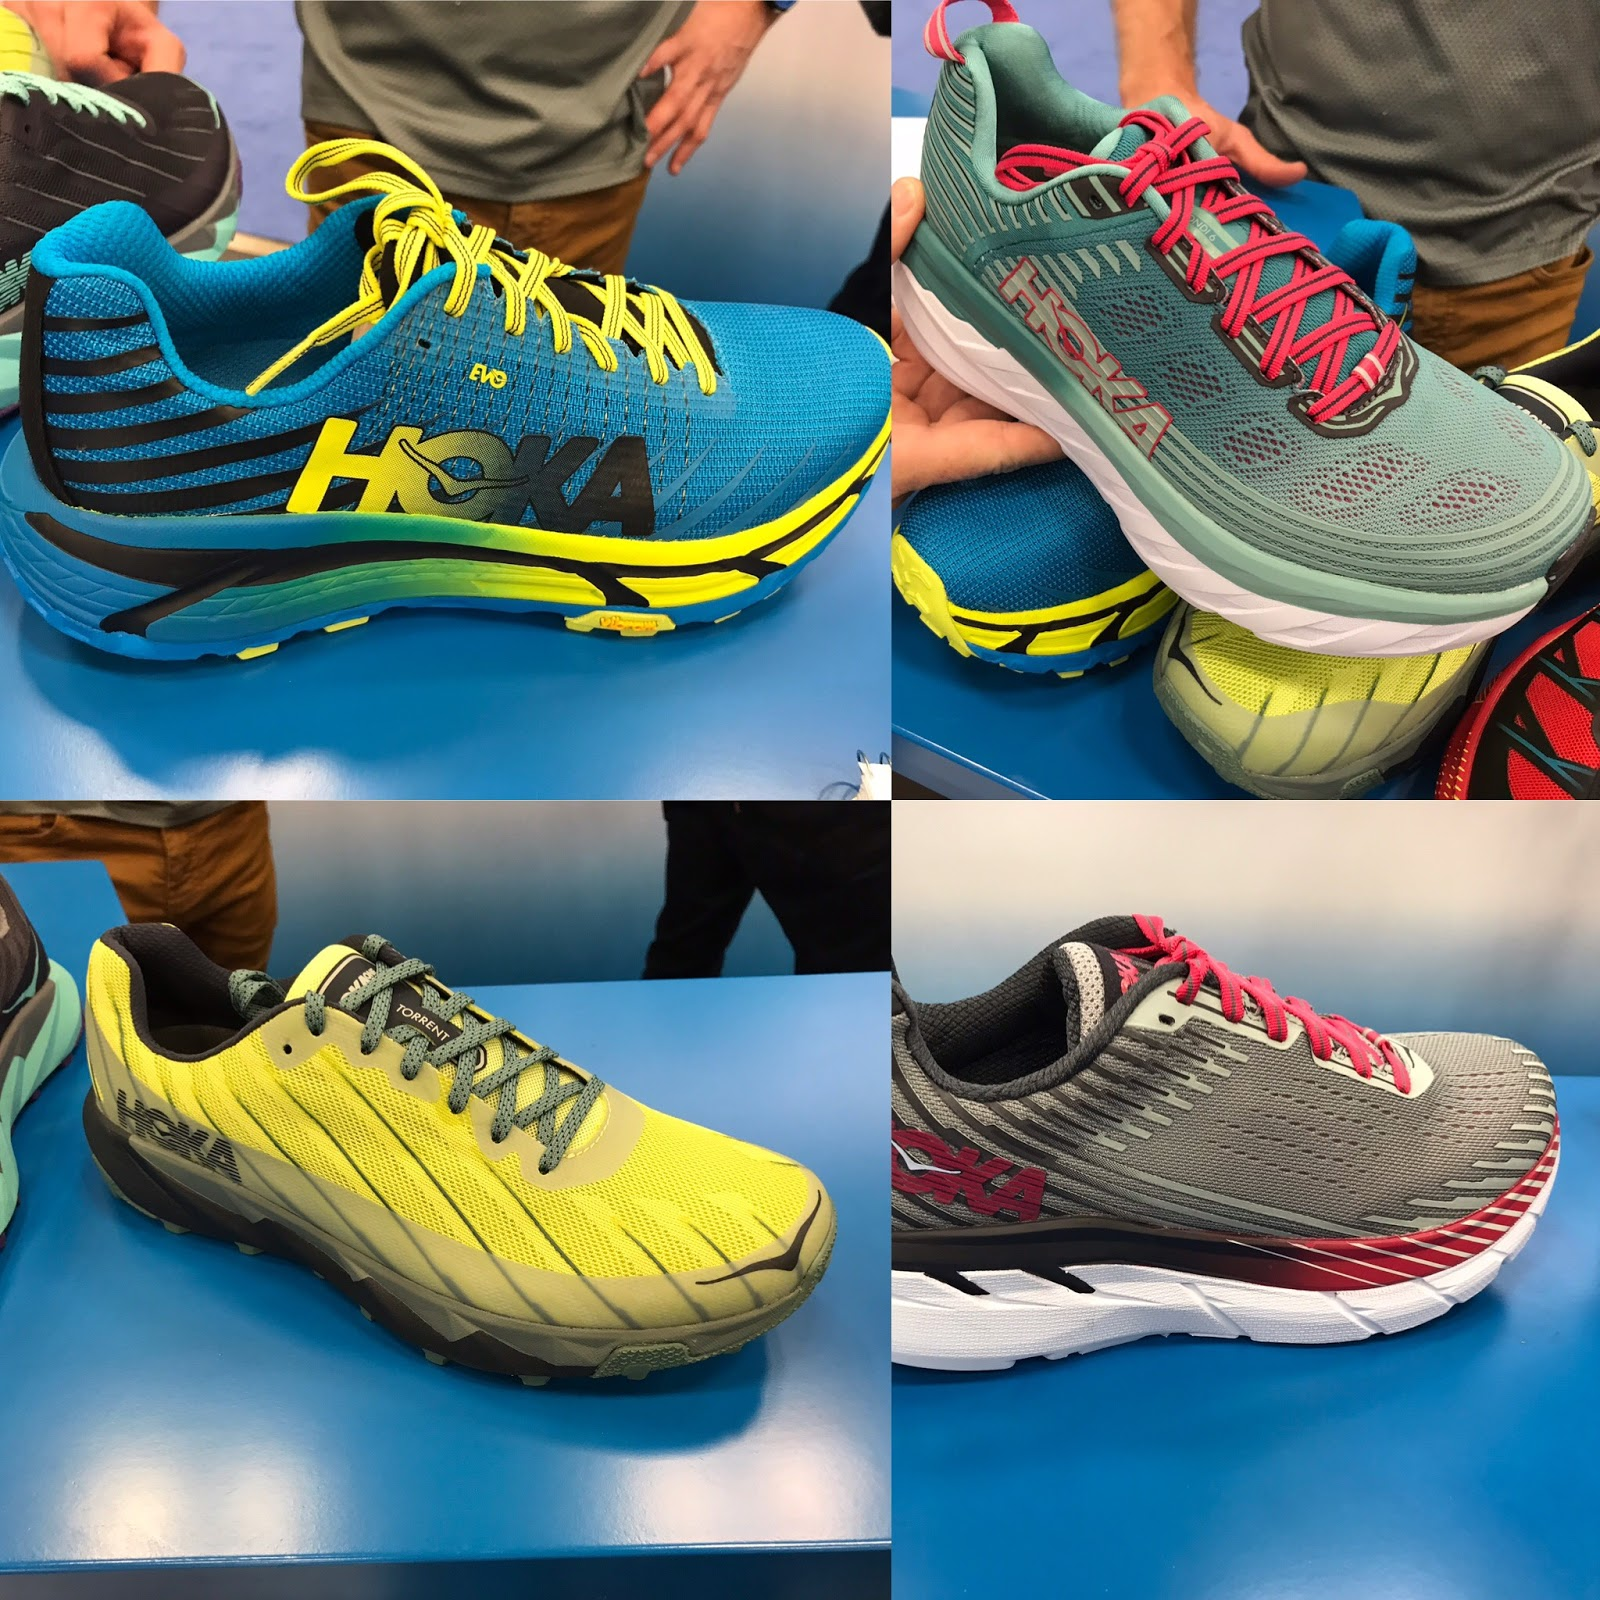 b370aea724e8 Hoka ONE ONE Spring 2018 Previews HERE New Fly Line with Mach (full review)  and Cavu (full review)